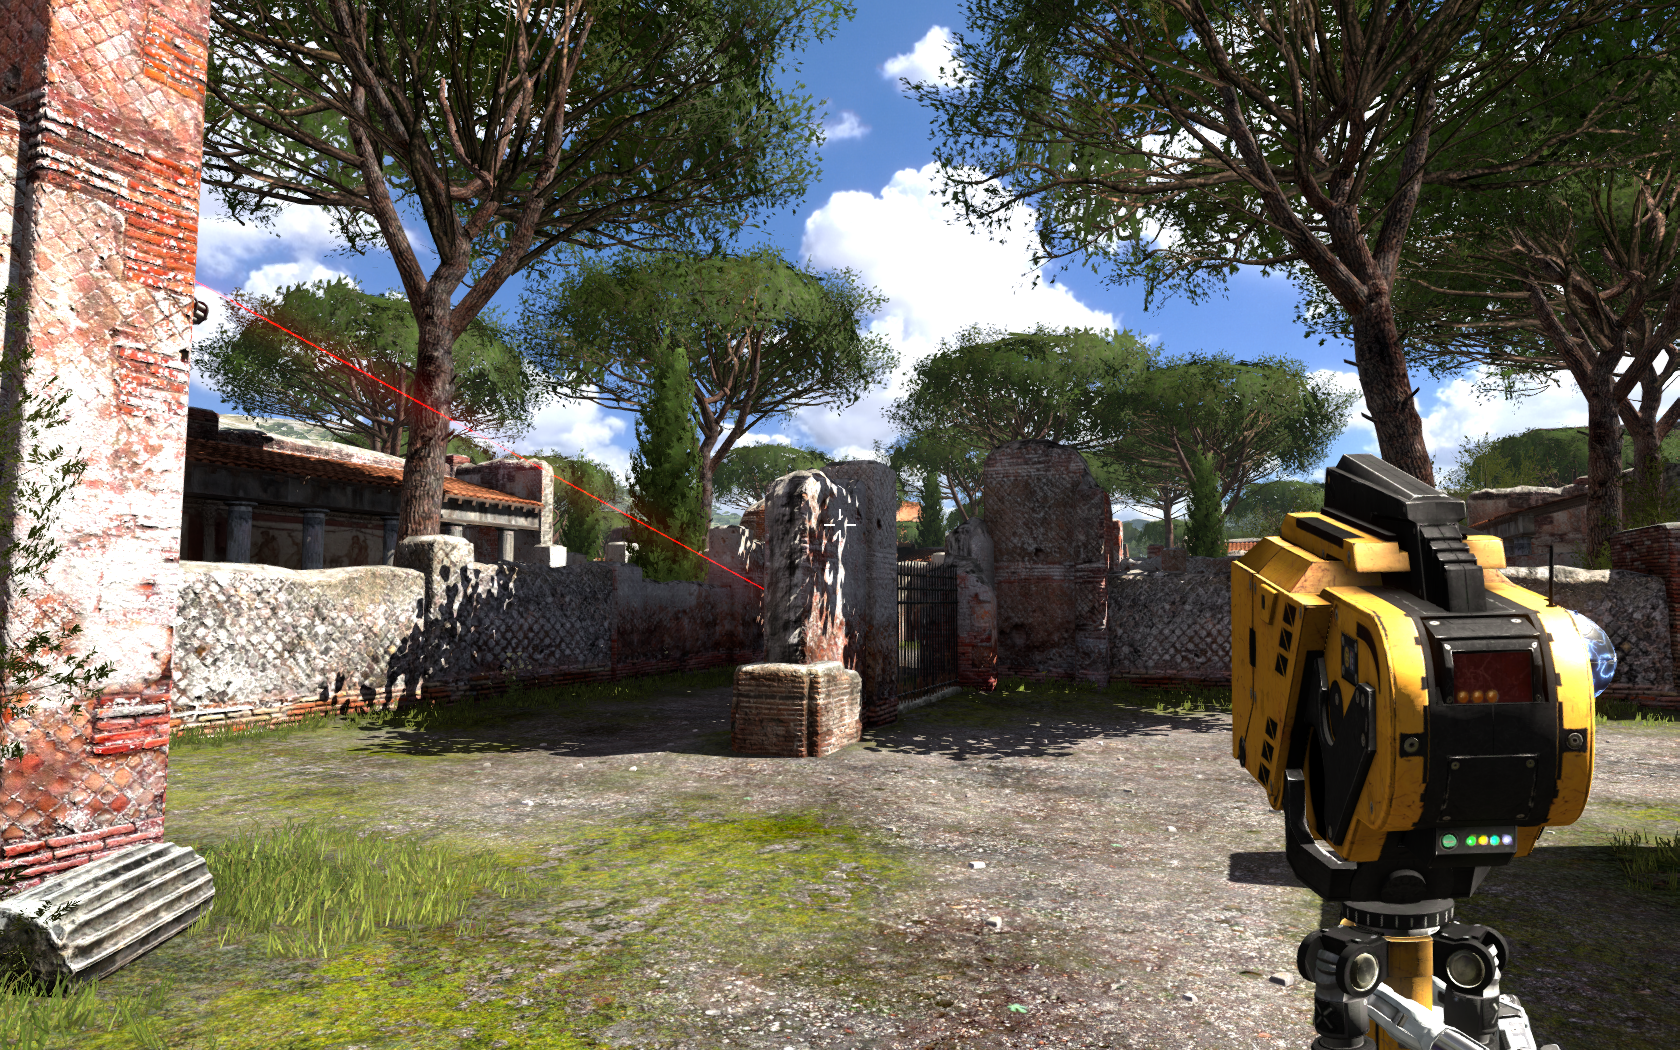 talos principle narrative review - HD 1680×1050